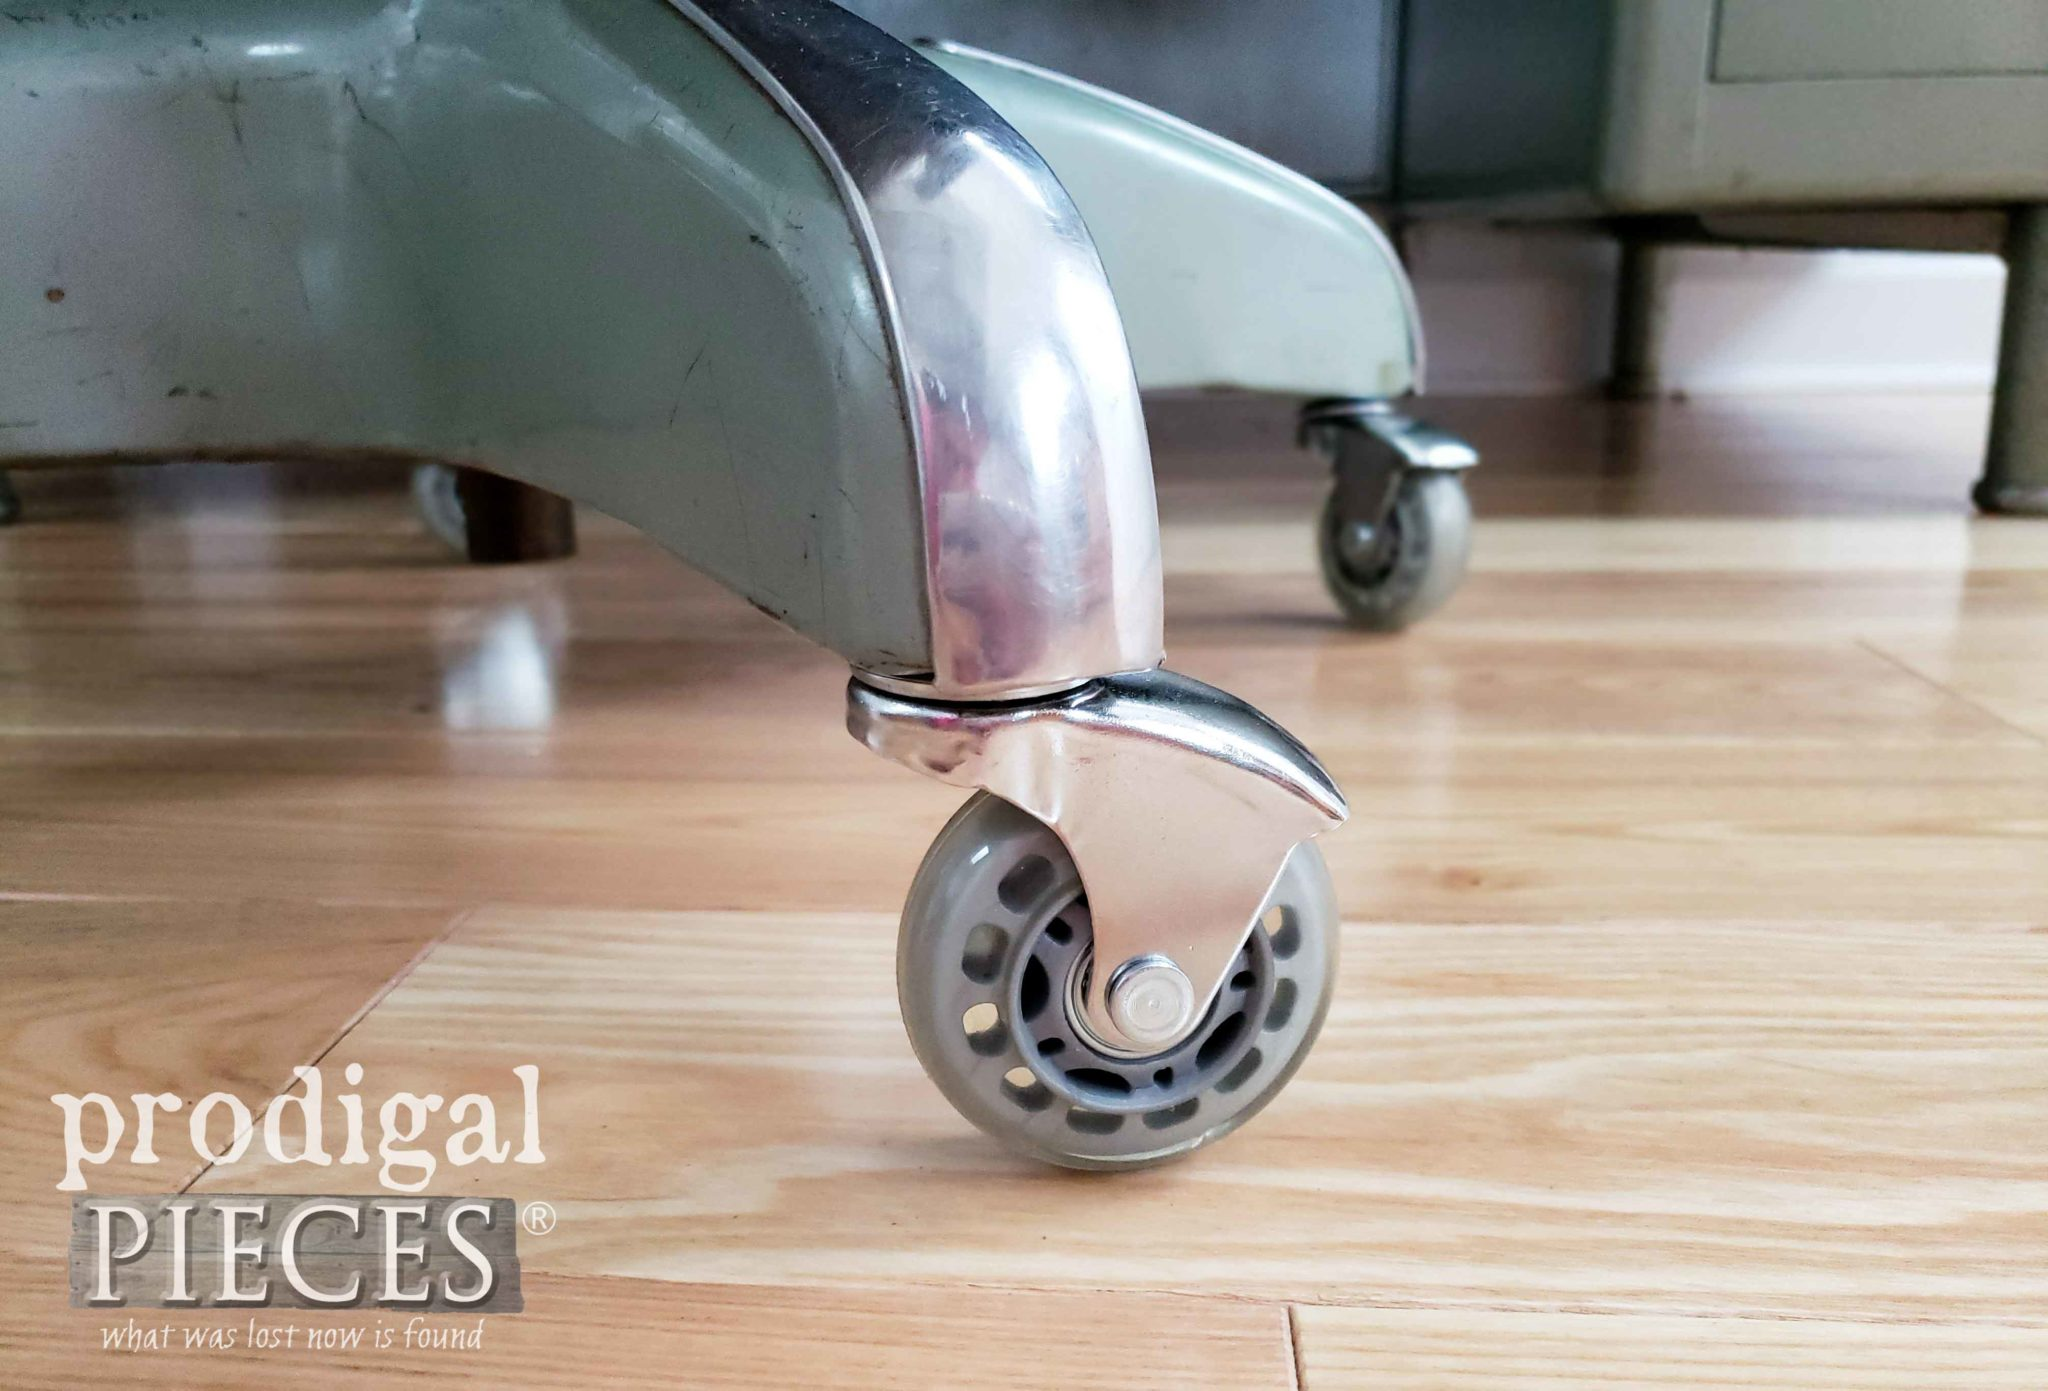 New Chair Caster for Hardwood Floors | Upholstery Tutorial by Larissa of Prodigal Pieces | prodigalpieces.com #prodigalpieces #diy #tutorial #home #furniture #vintage #homedecor #retro